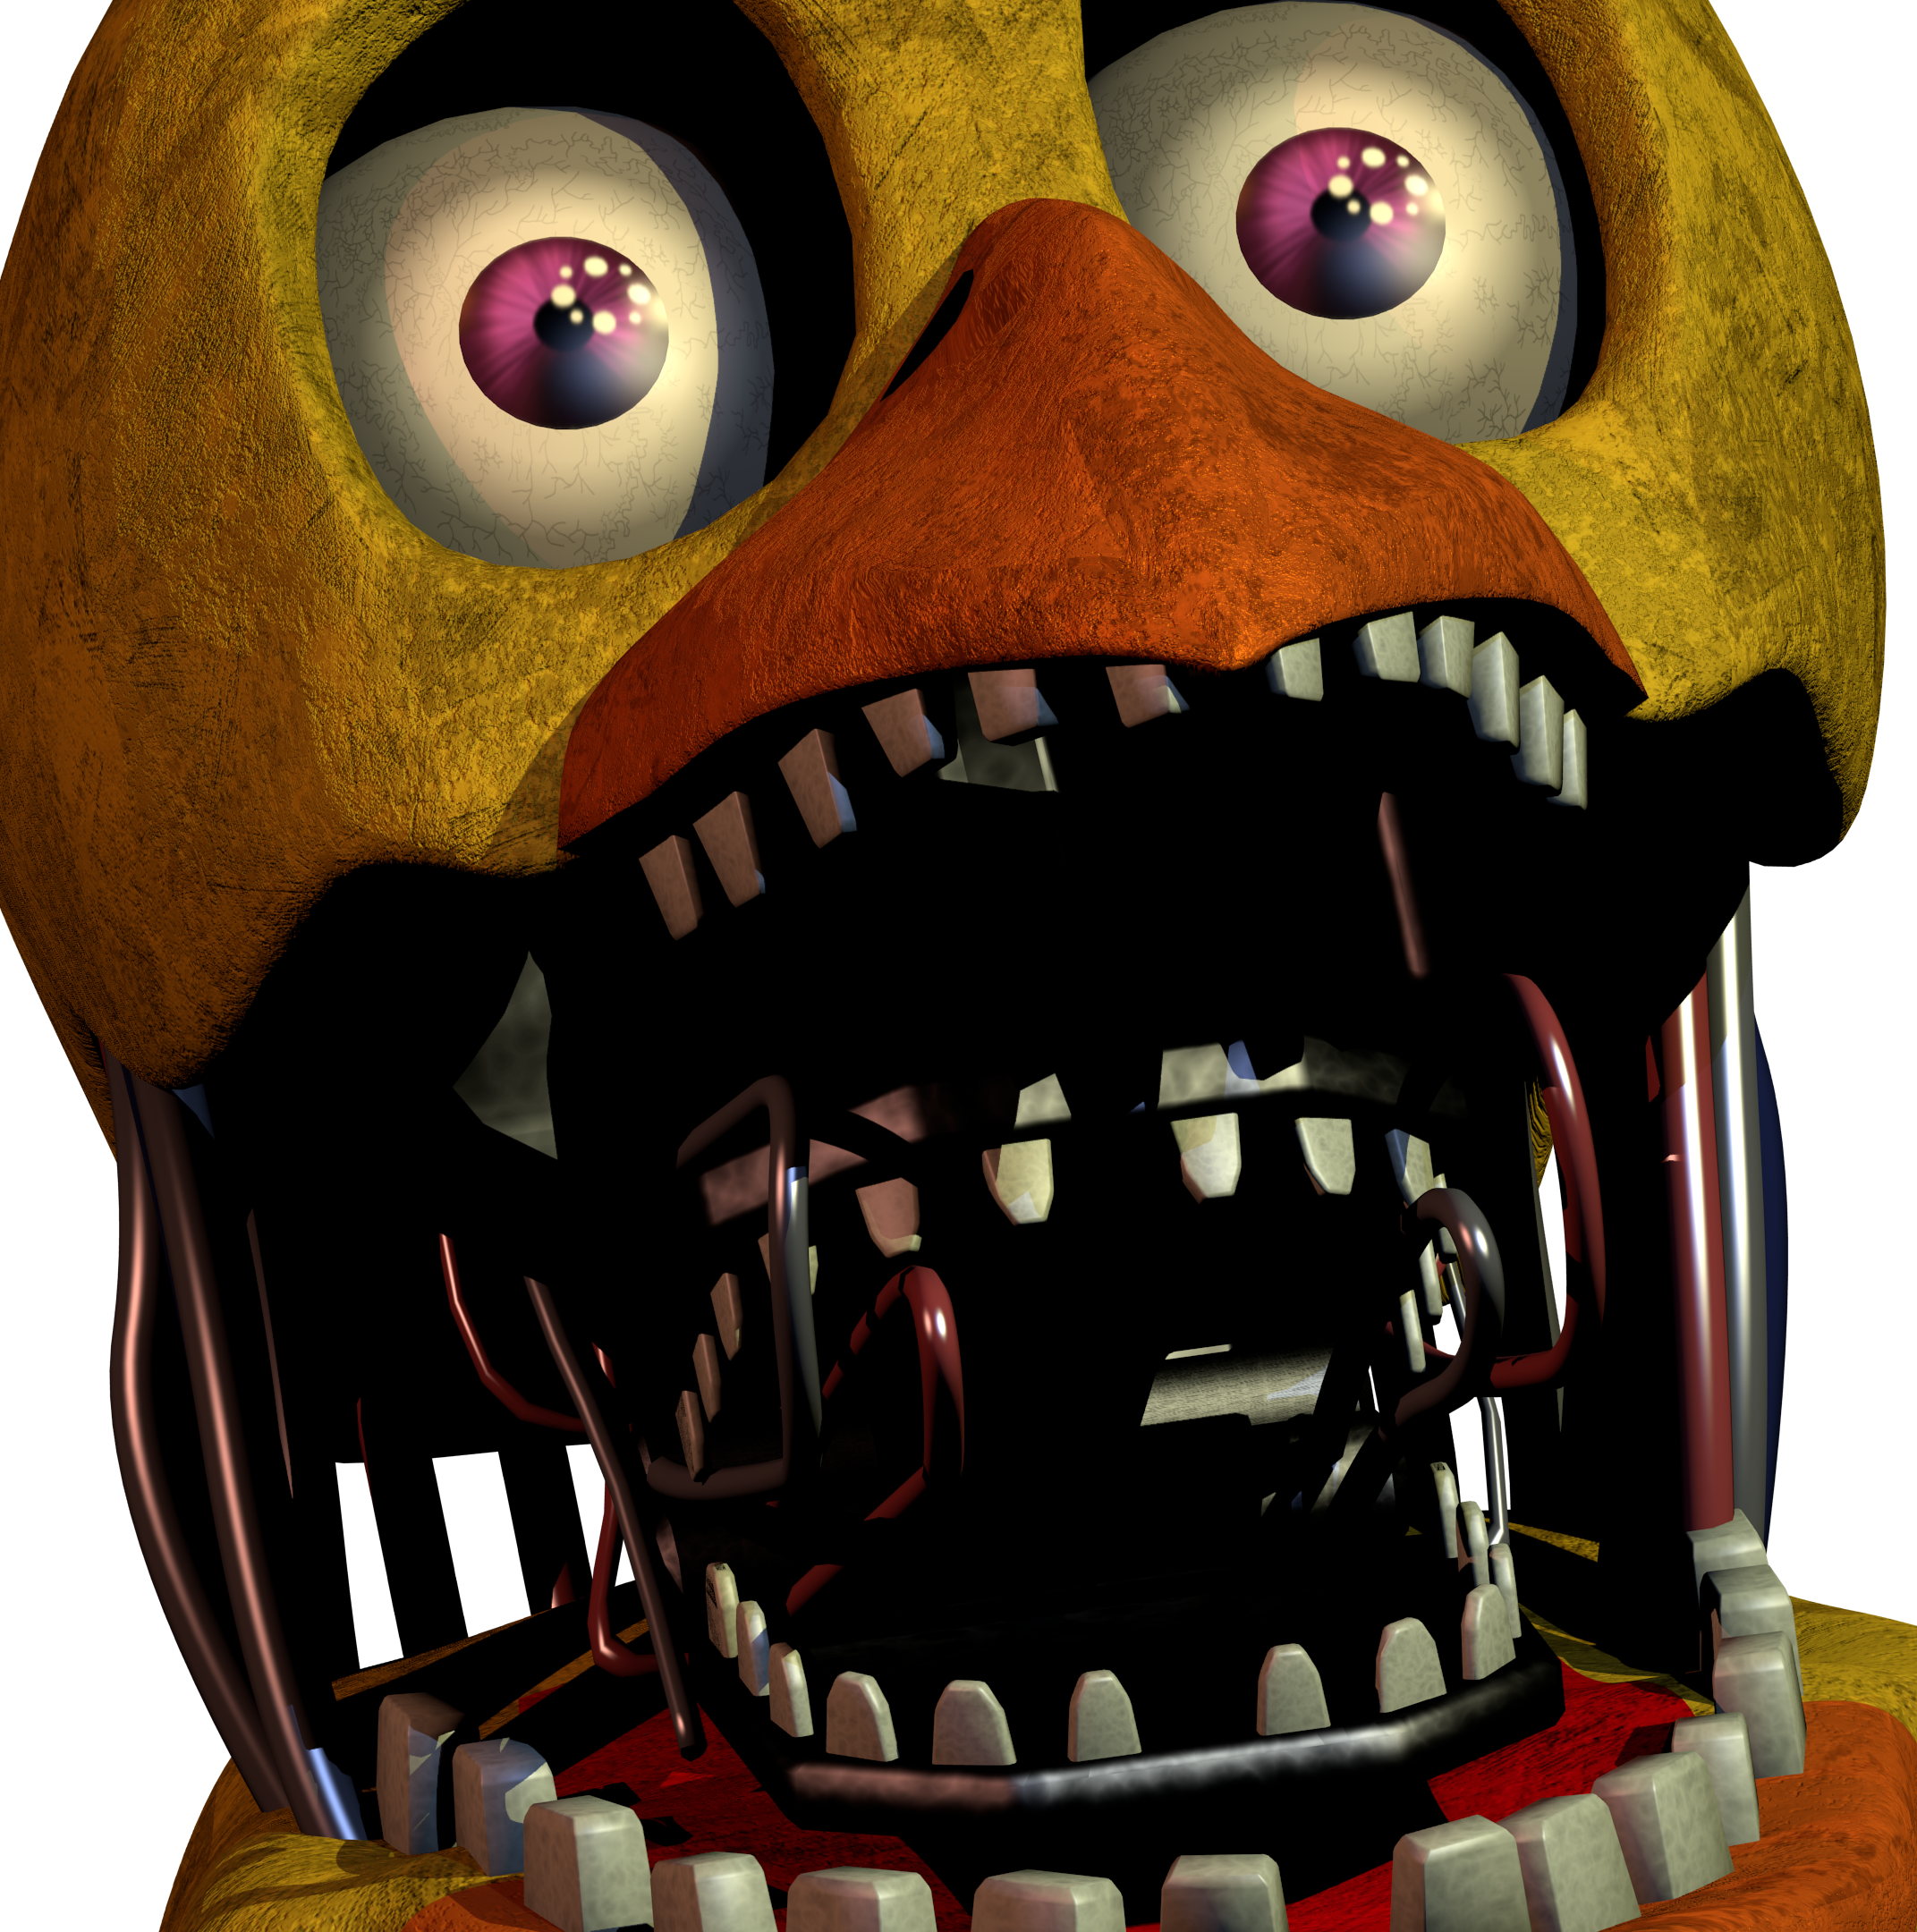 Images of Fnaf Withered Chica - #rock-cafe